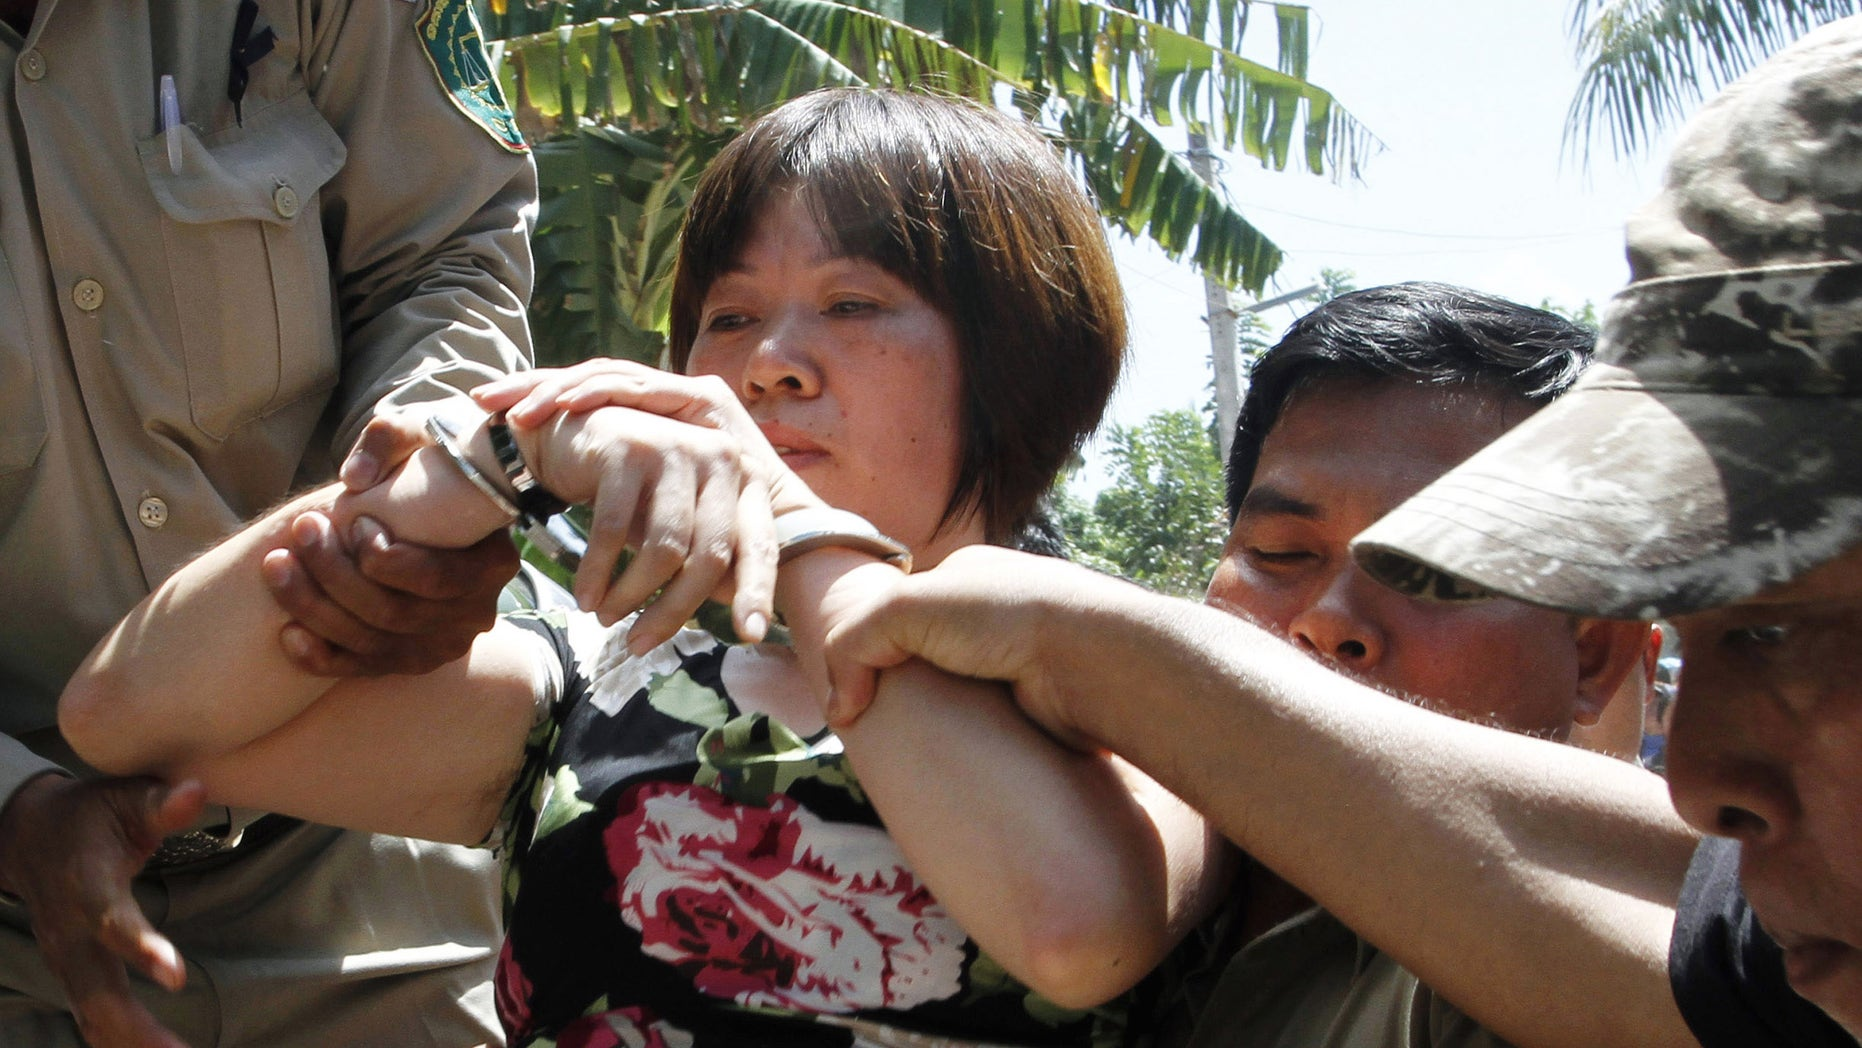 Oct. 22, 2012: In this photo, Wang Zia Chao, 43, a Chinese factory supervisor, is escorted by Cambodian police officers after being detained, on the outskirts of Phnom Penh, Cambodia.